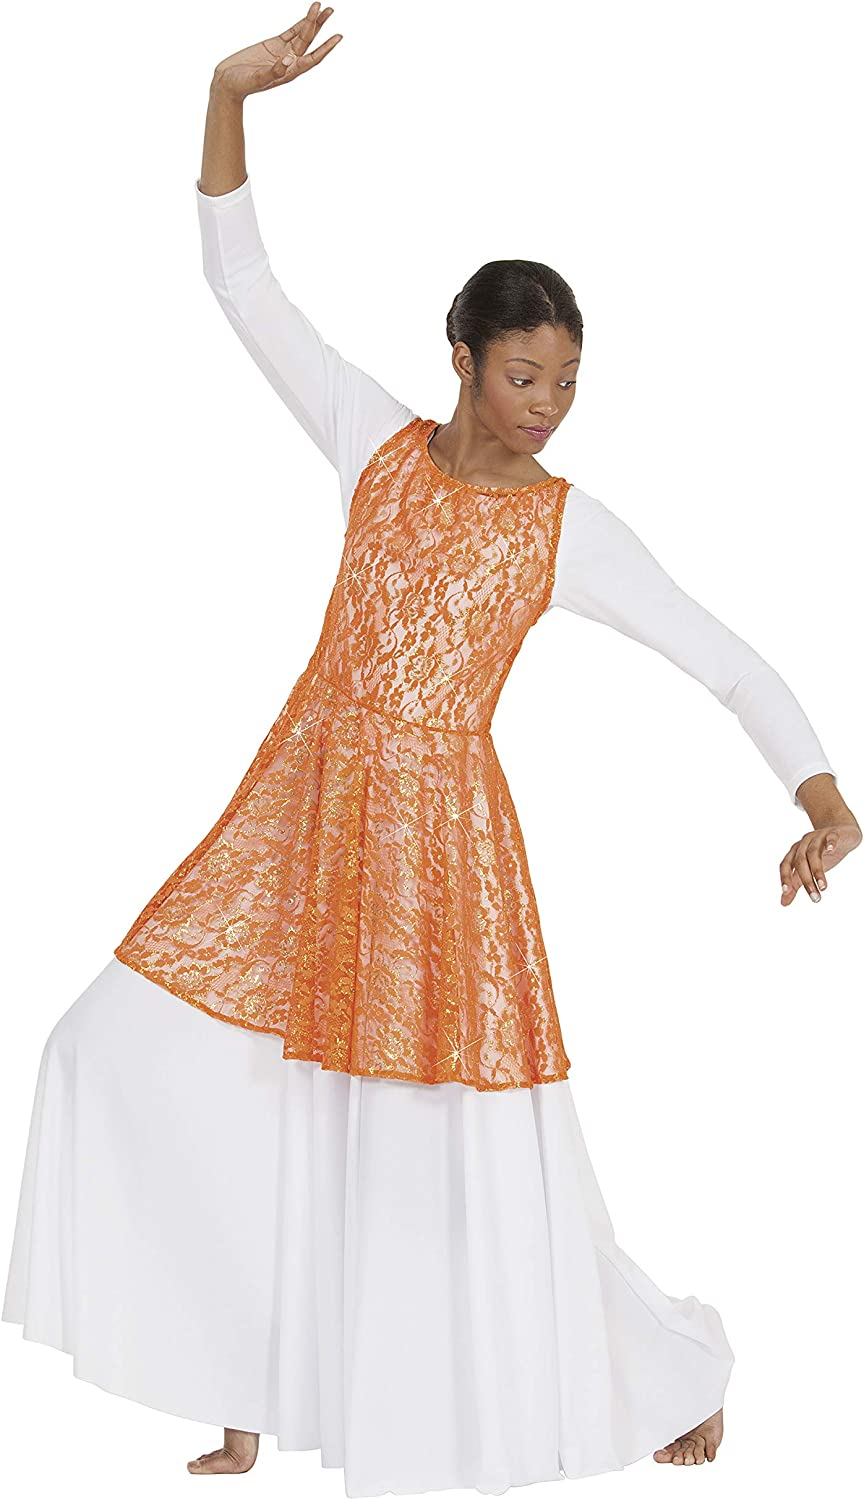 Eurotard 65568 List price Adult Lace Our shop most popular Heavenly Tunic